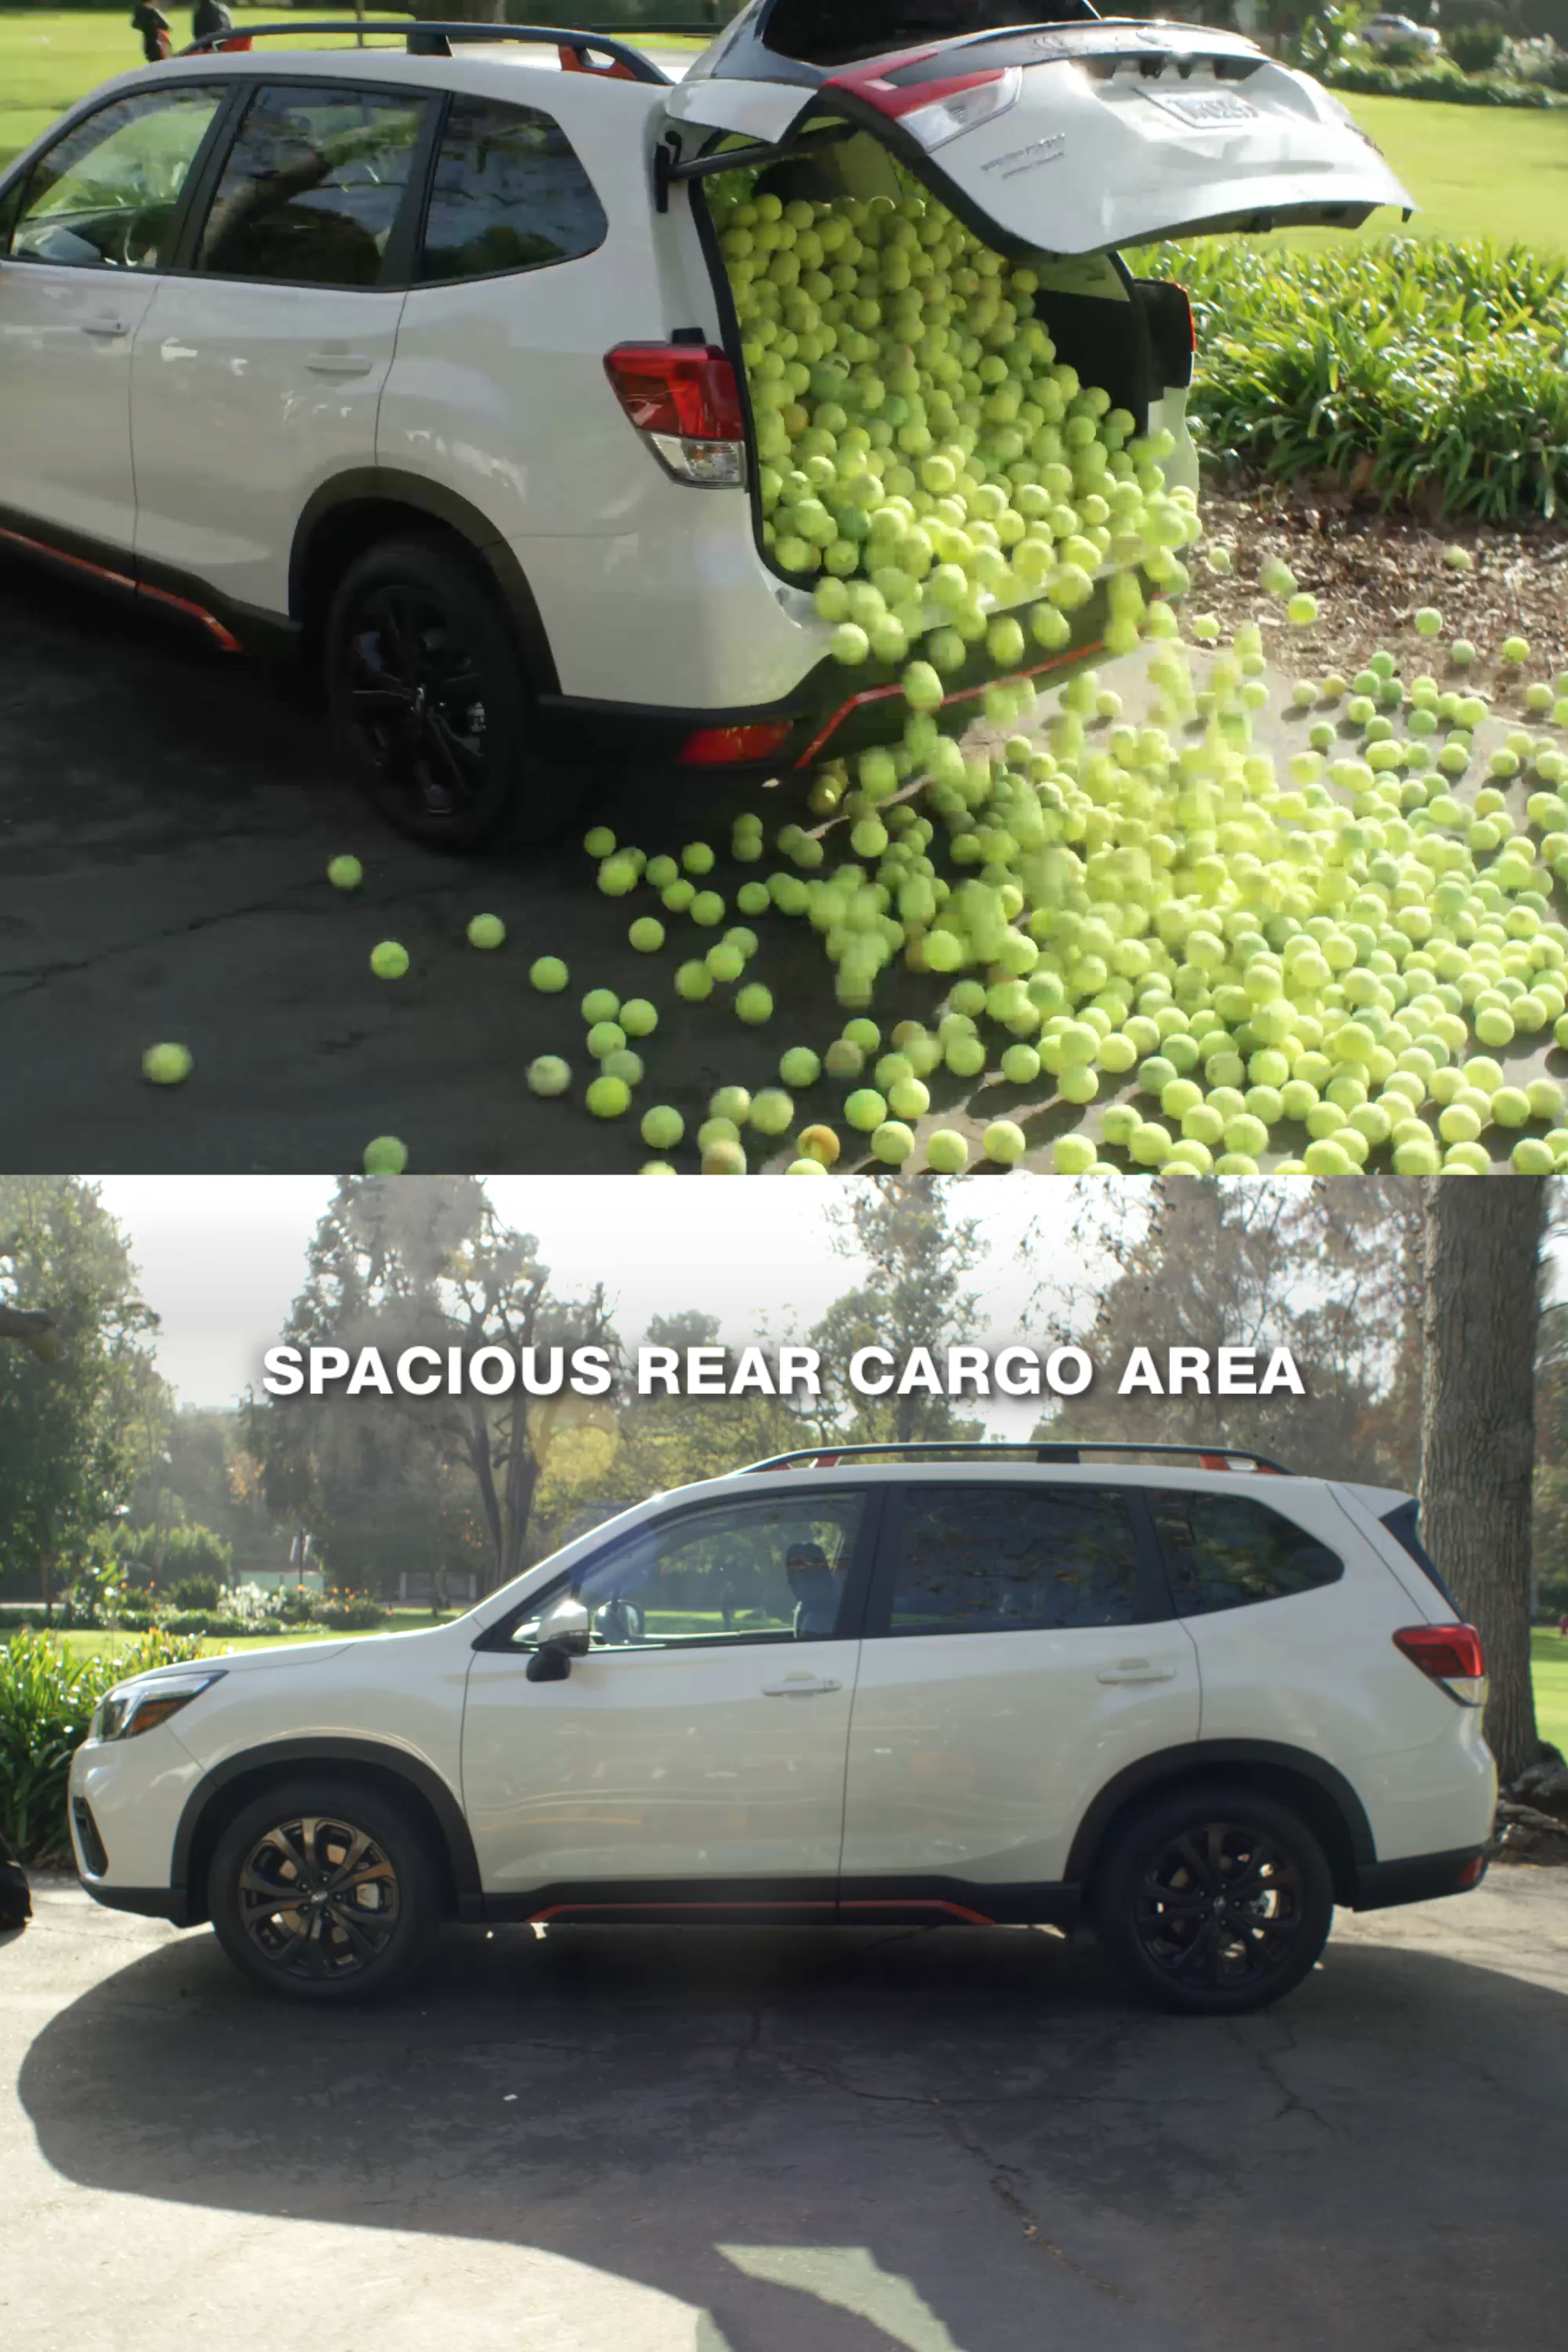 Subaru Forester Cargo Space >> The All New 2019 Subaru Forester With Up To 76 1 Cubic Feet Of